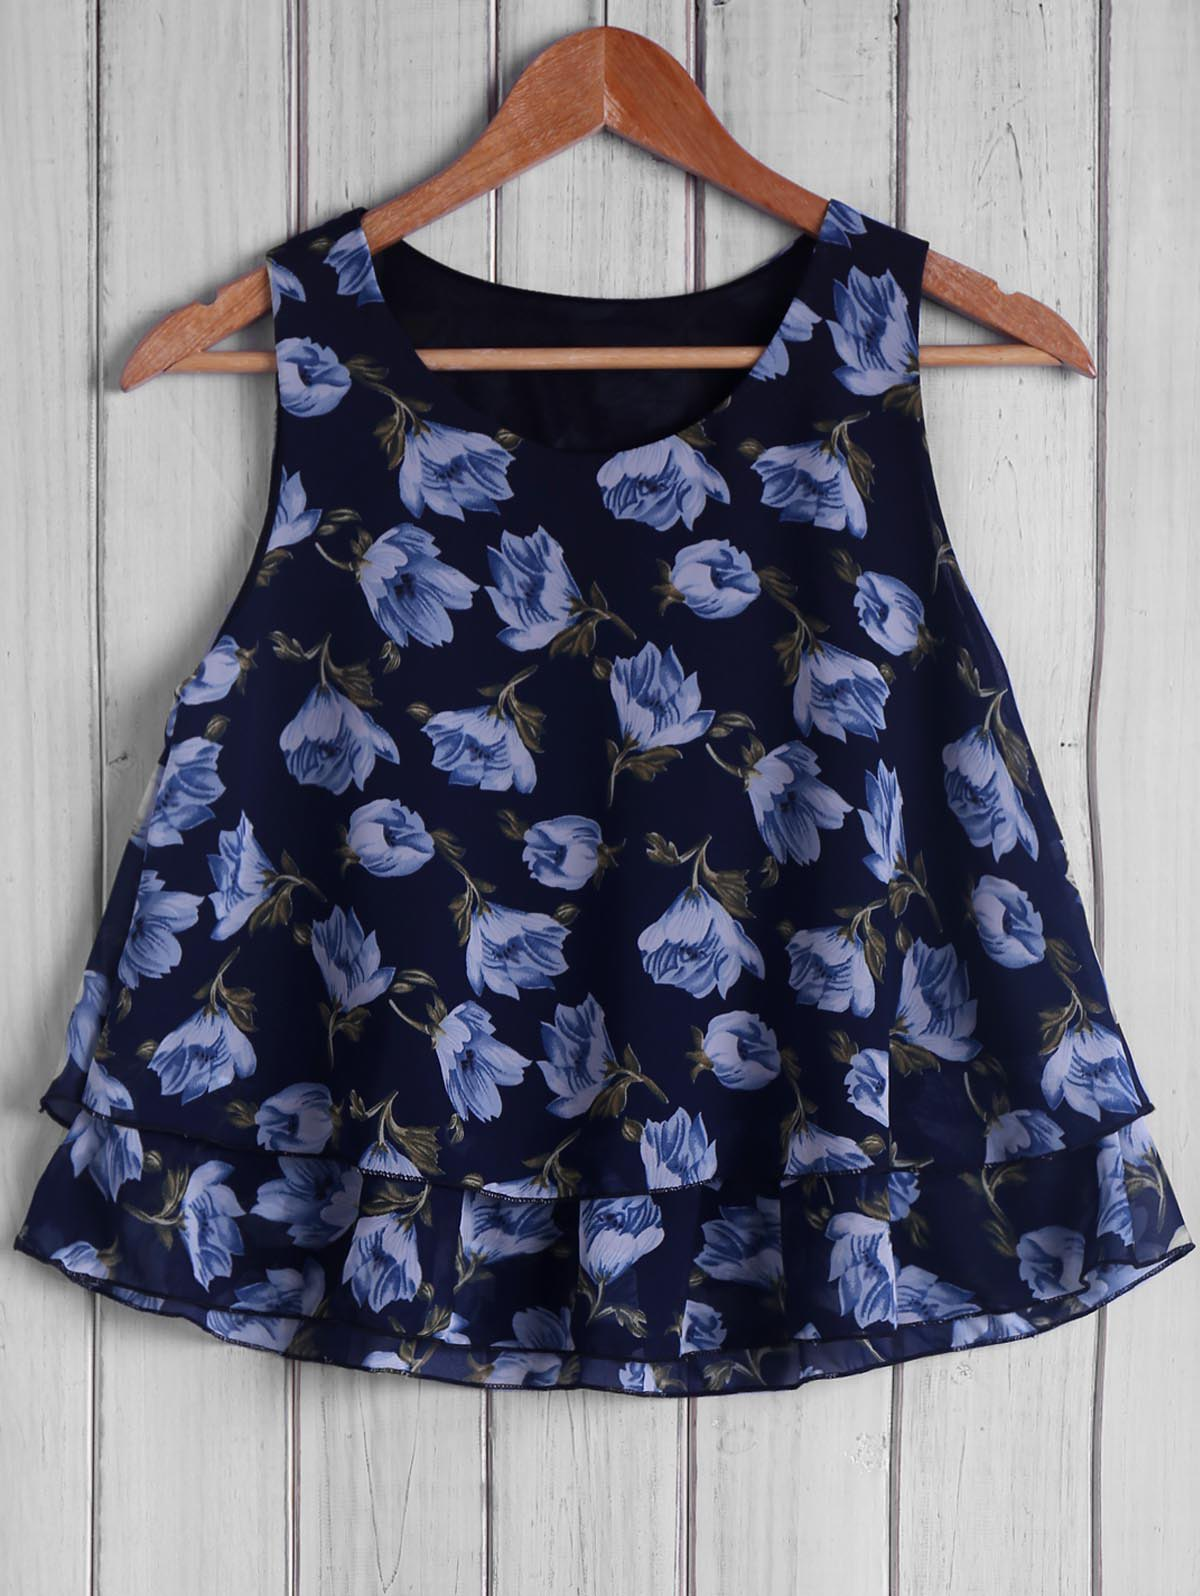 Trendy Sleeveless Round Collar Floral Print Loose-Fitting Women's Tank Top - CADETBLUE ONE SIZE(FIT SIZE XS TO M)